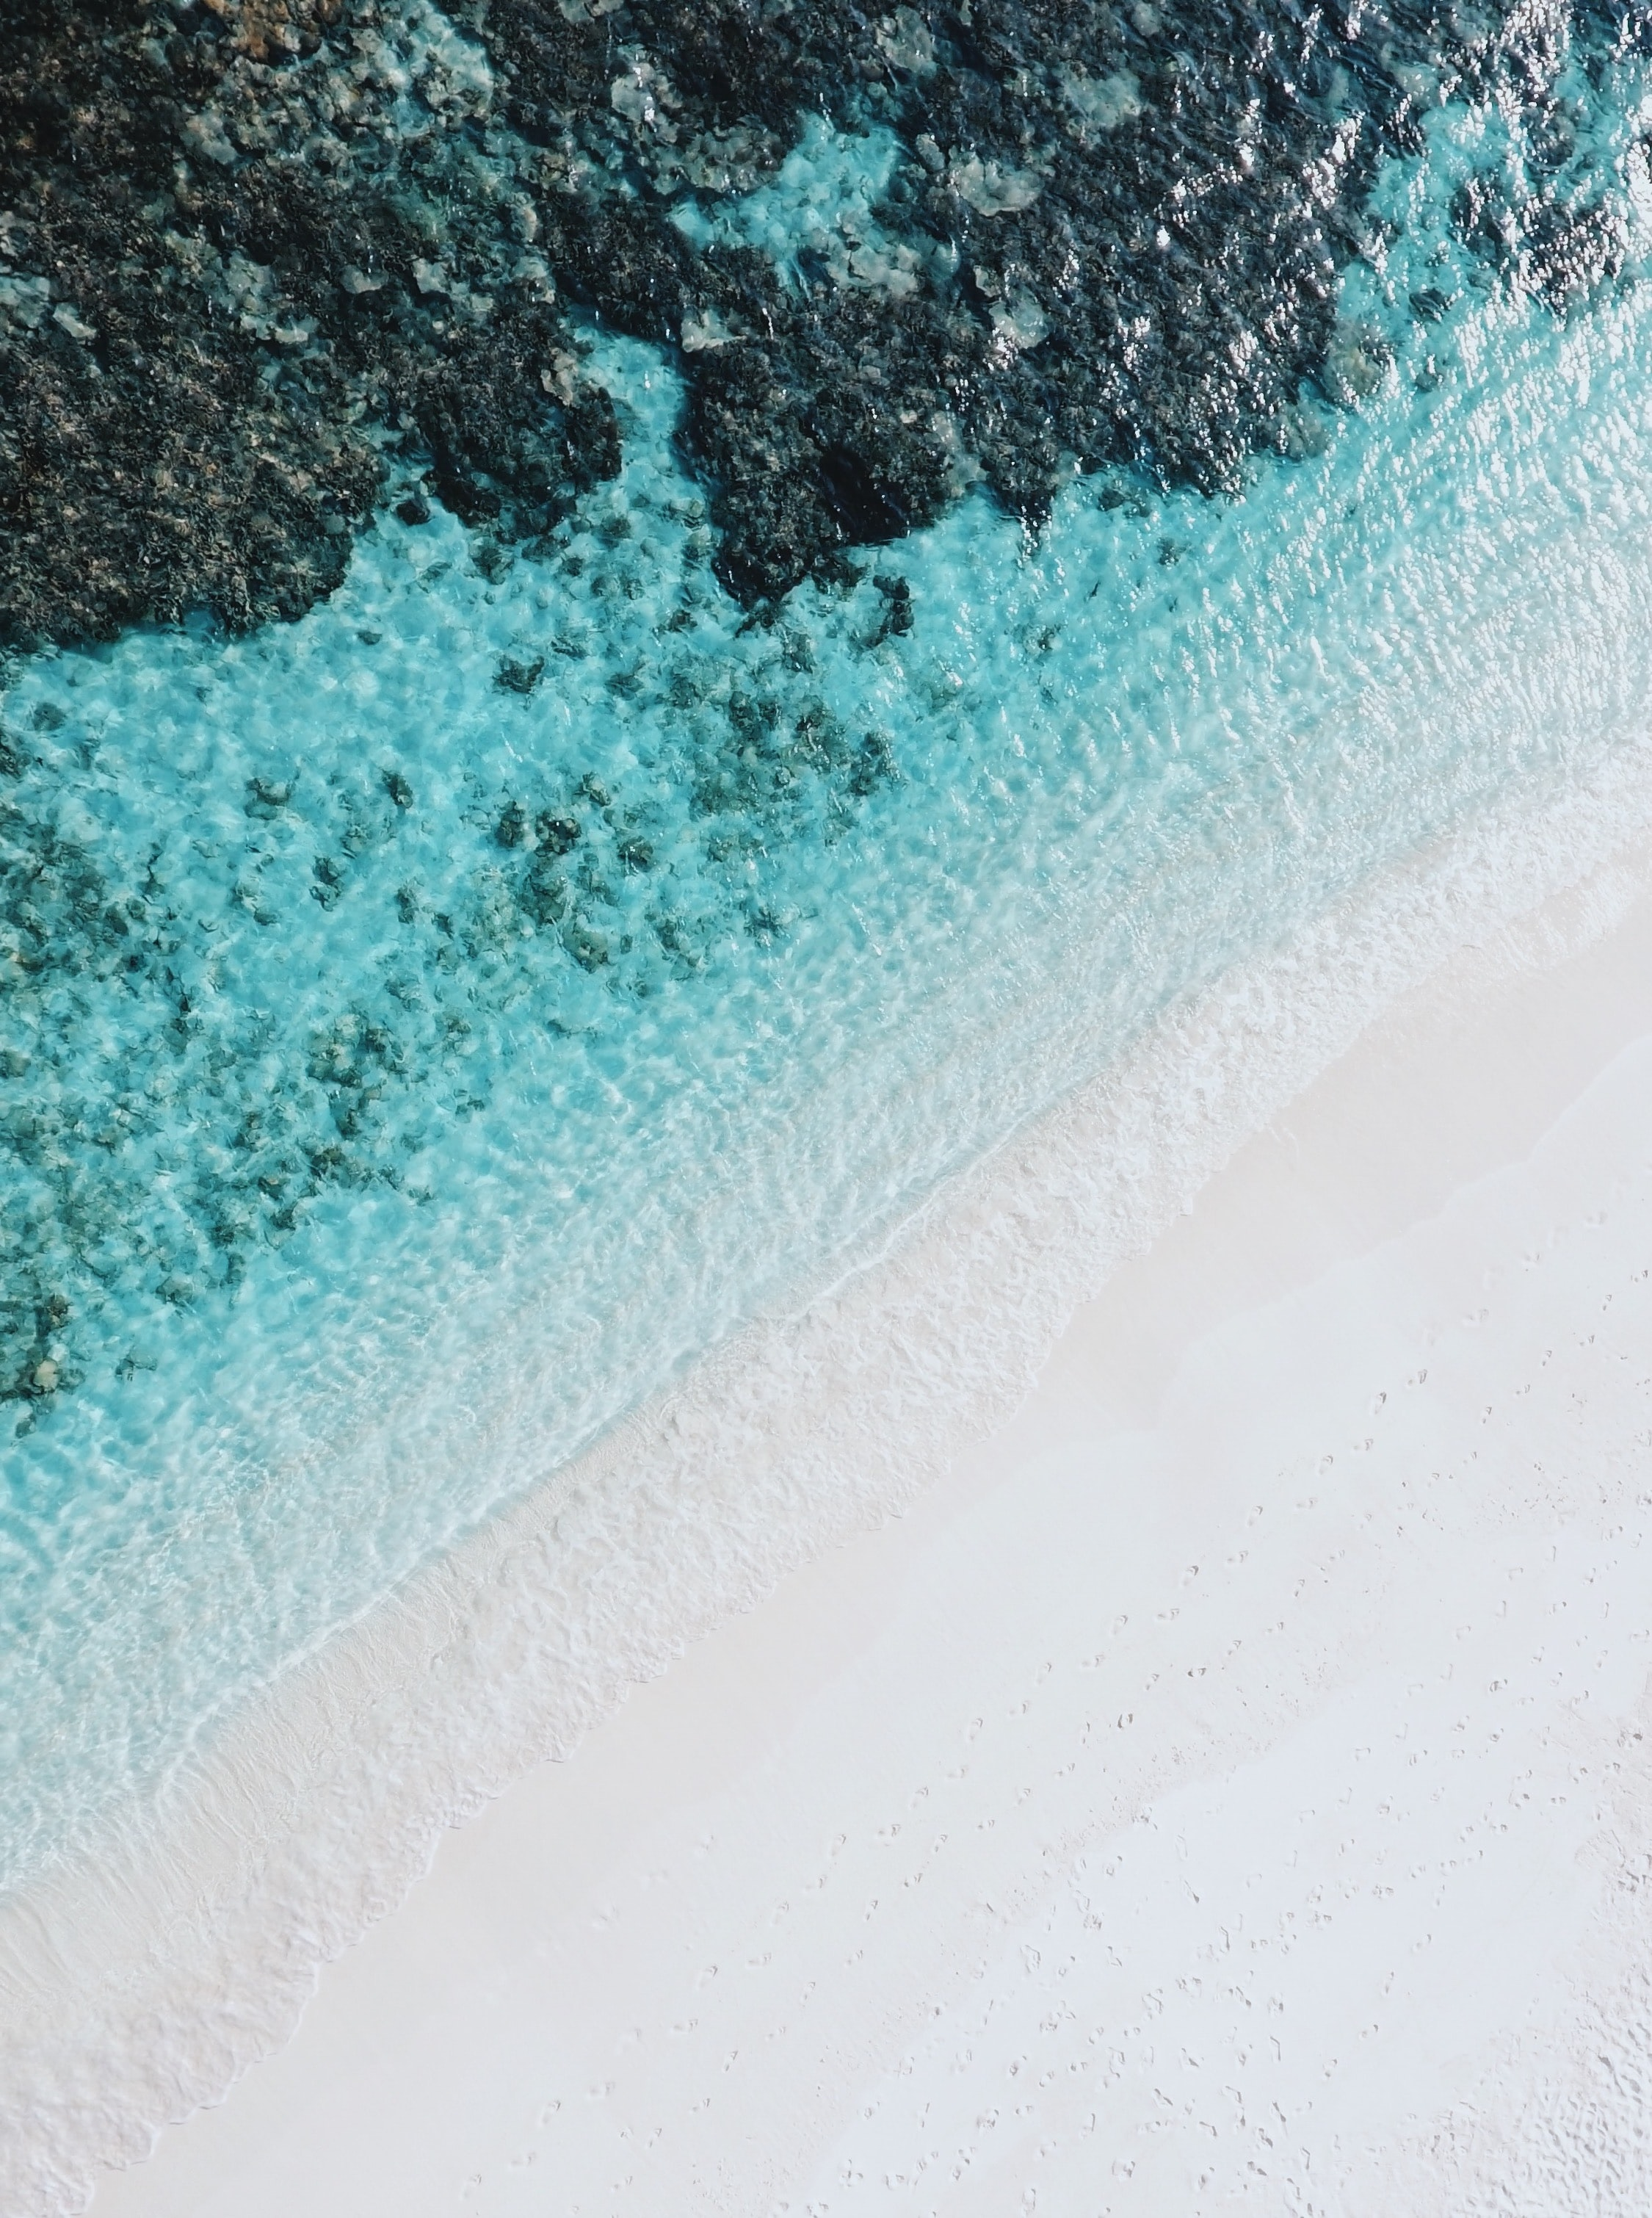 Free Unsplash photo from Syd Sujuaan